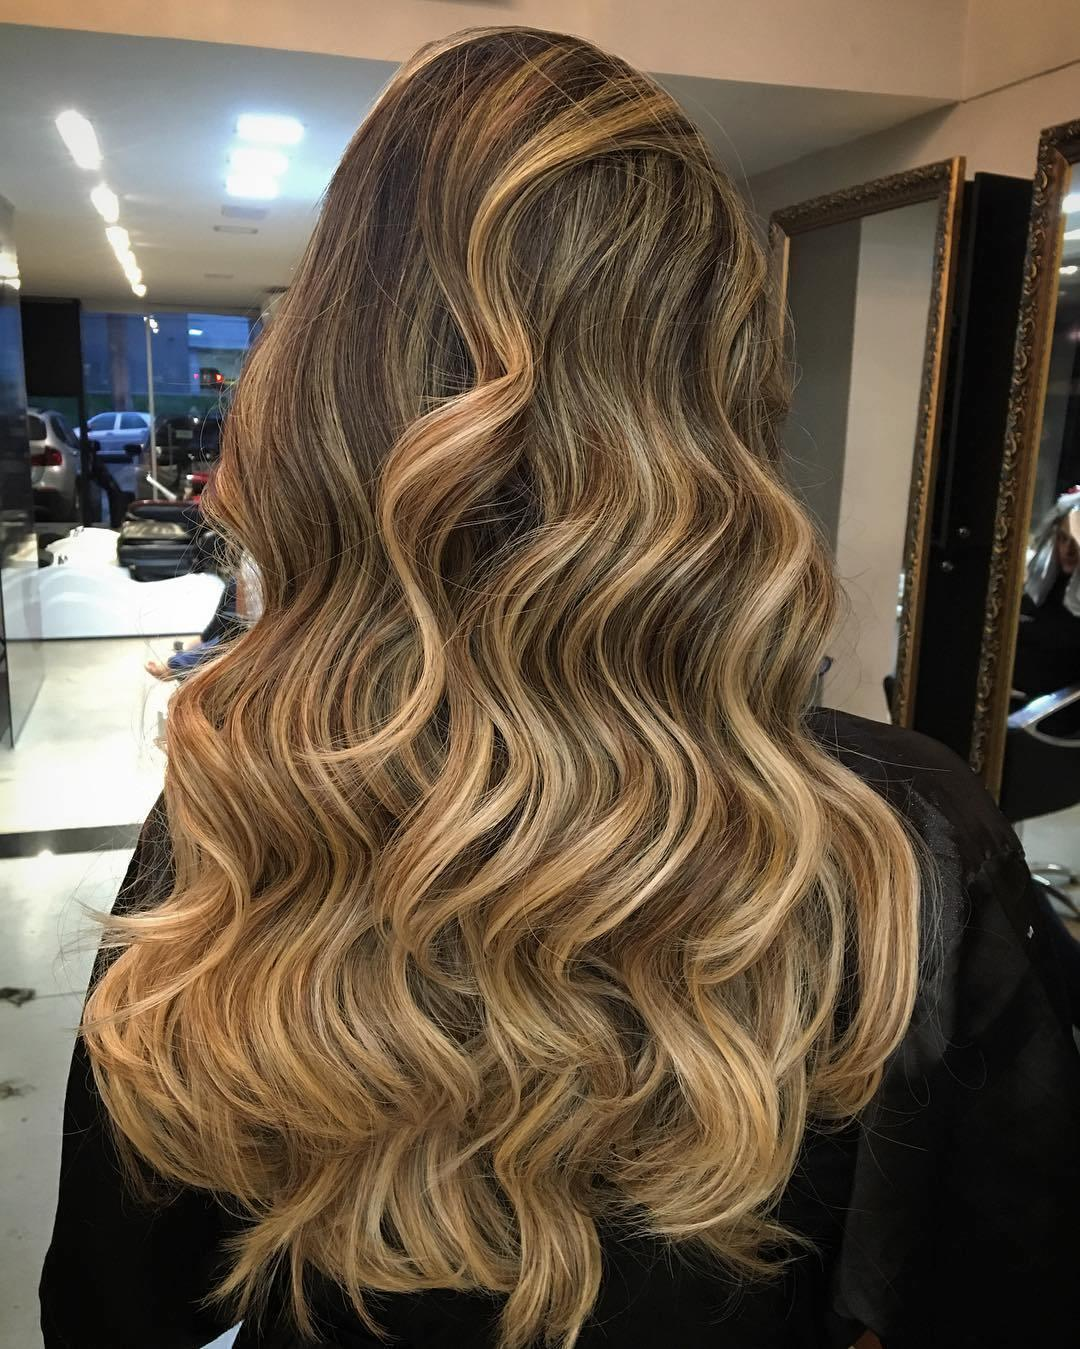 New 50 Light Brown Hair Color Ideas With Highlights And Lowlights Ideas With Pictures